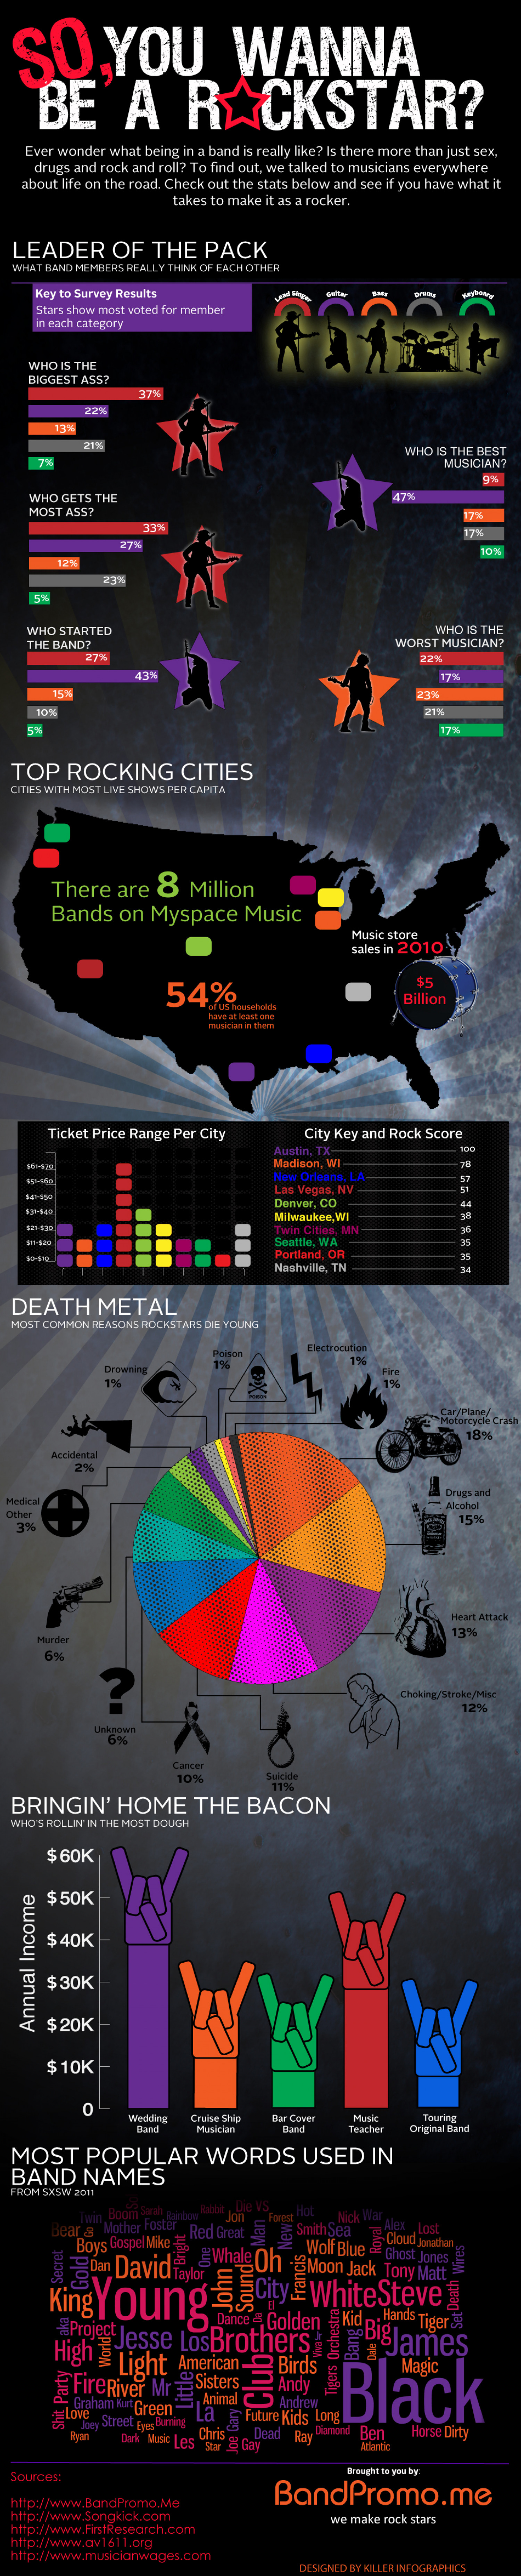 So You Want to be a Rockstar? Infographic